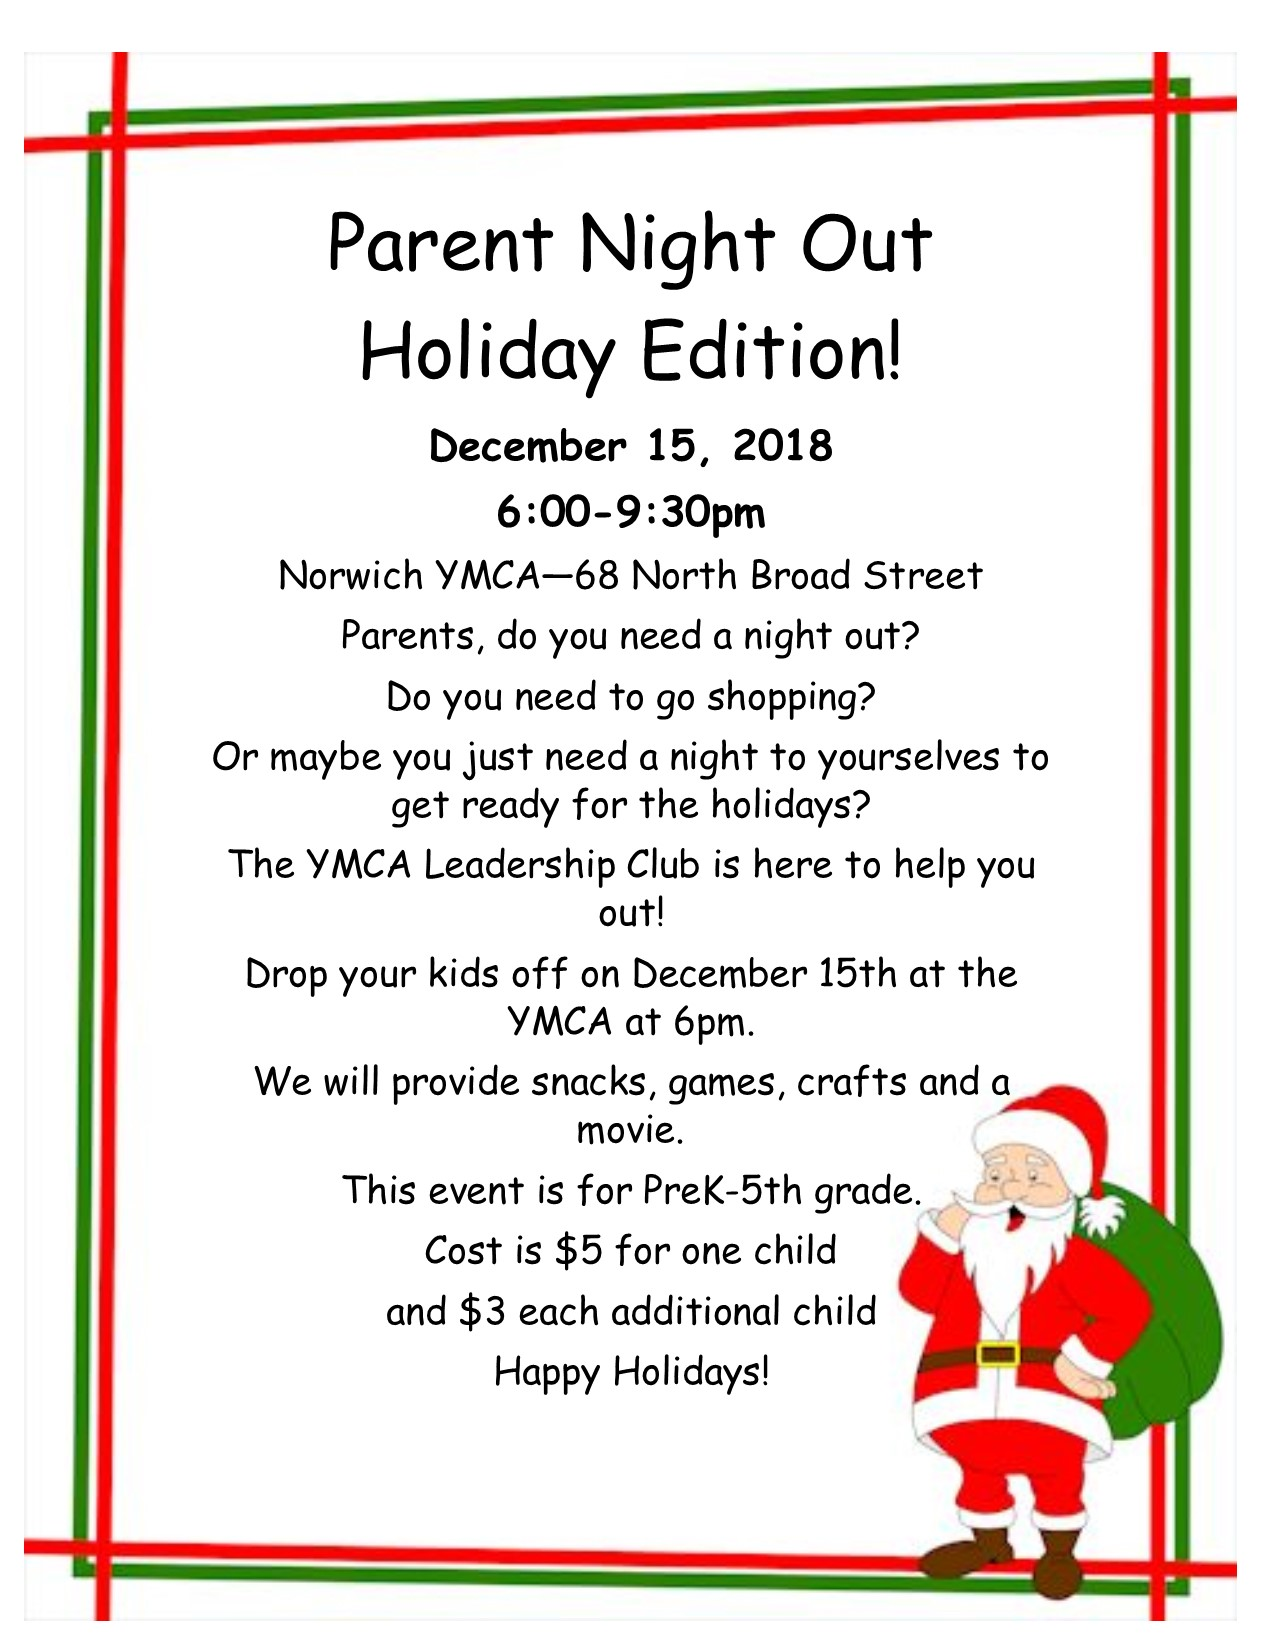 YMCA Flyer for Parent Night Out